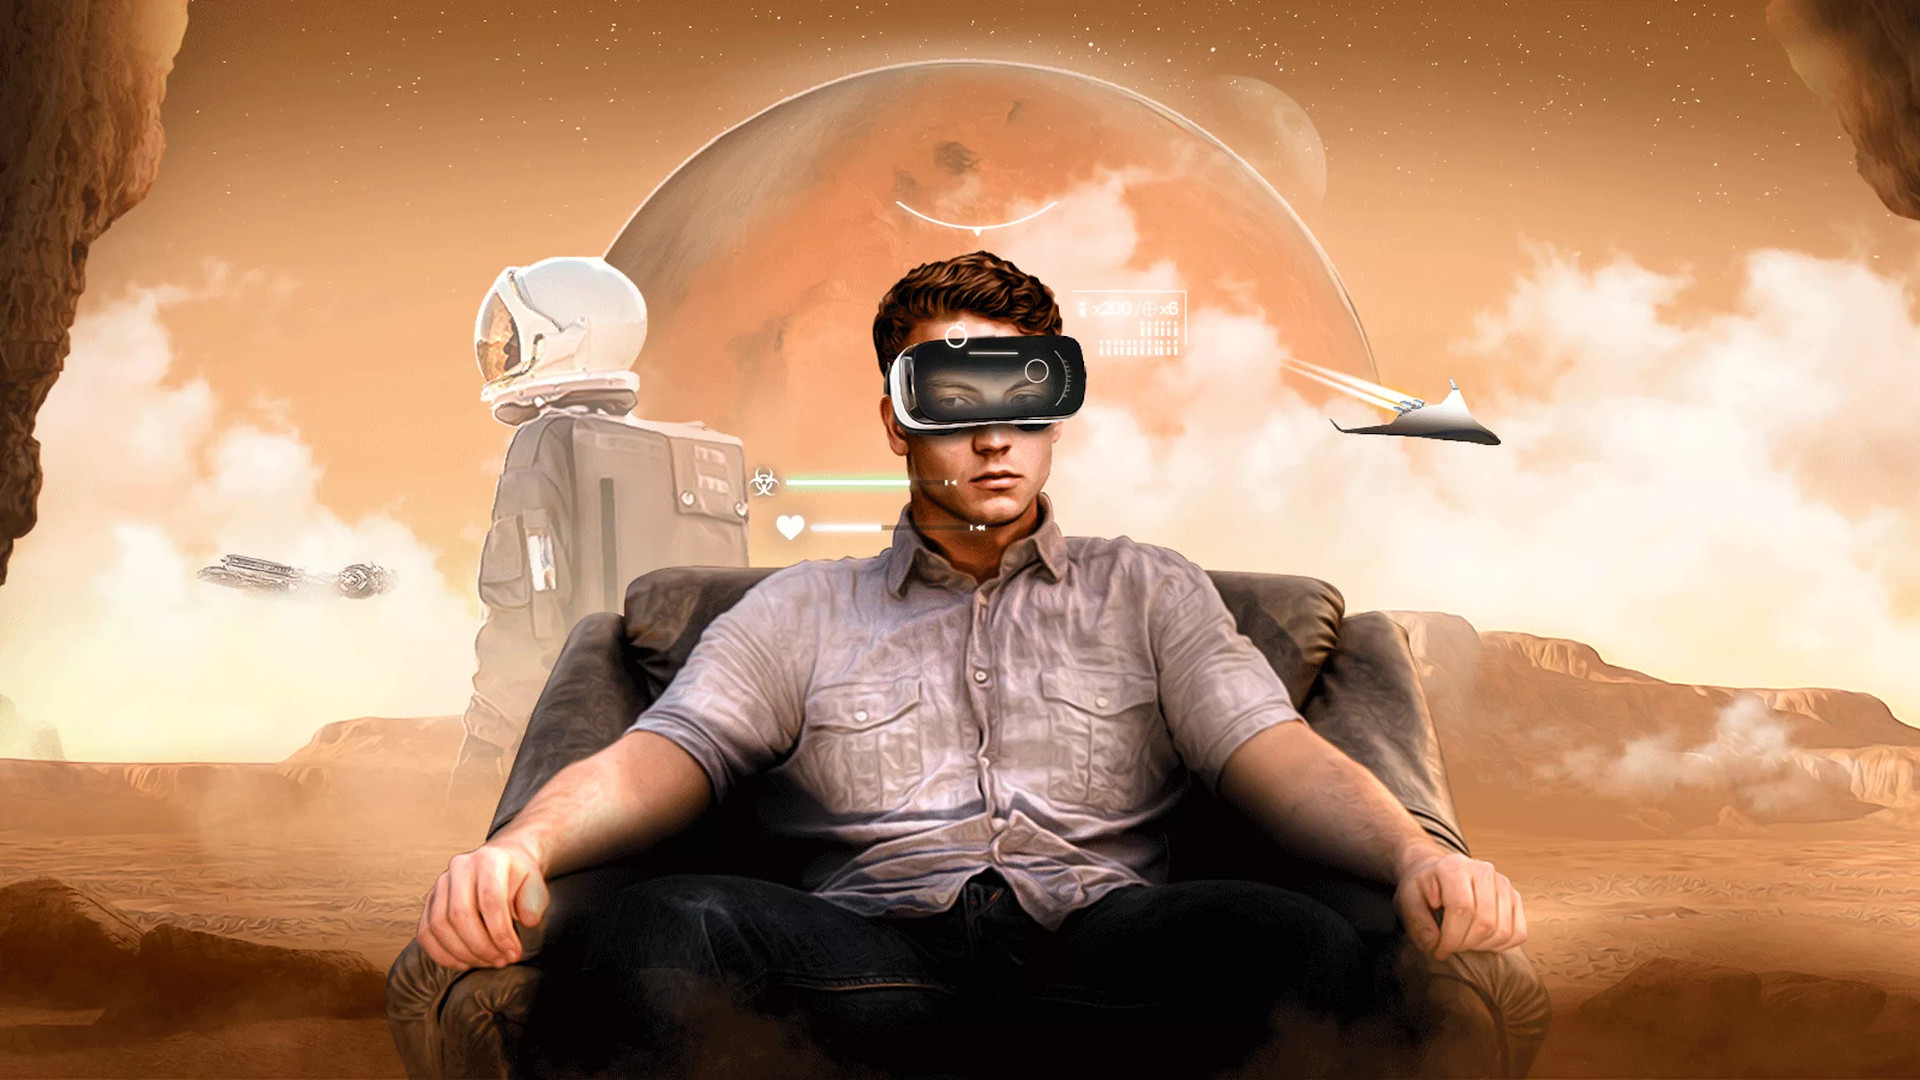 The future of Mars colonization begins with VR and video games – CNET.com